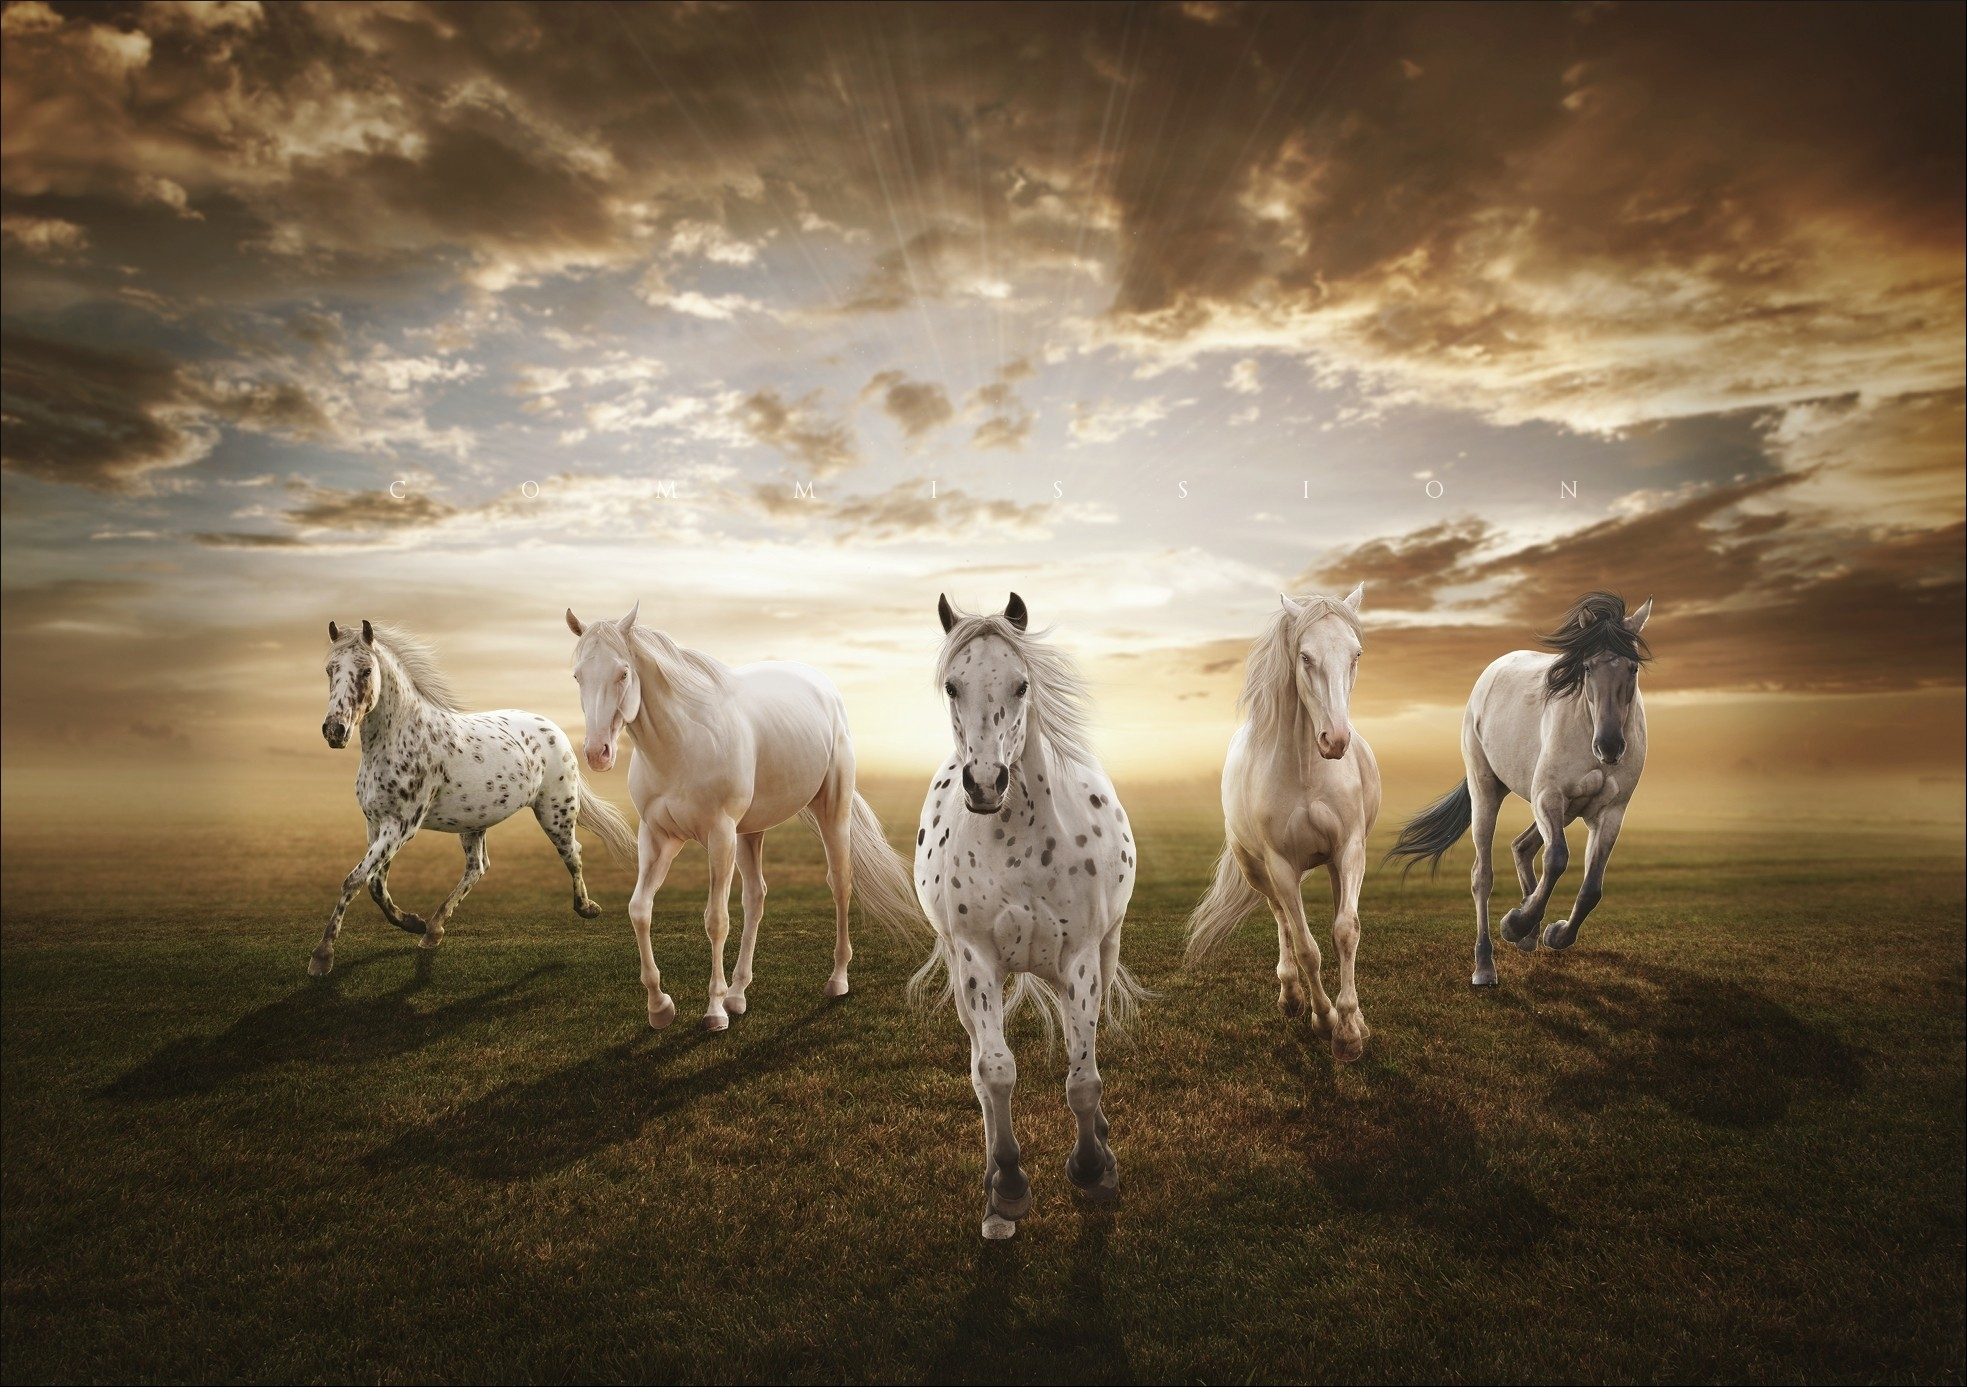 153920 download wallpaper Animals, Sunset, Field, Horses screensavers and pictures for free